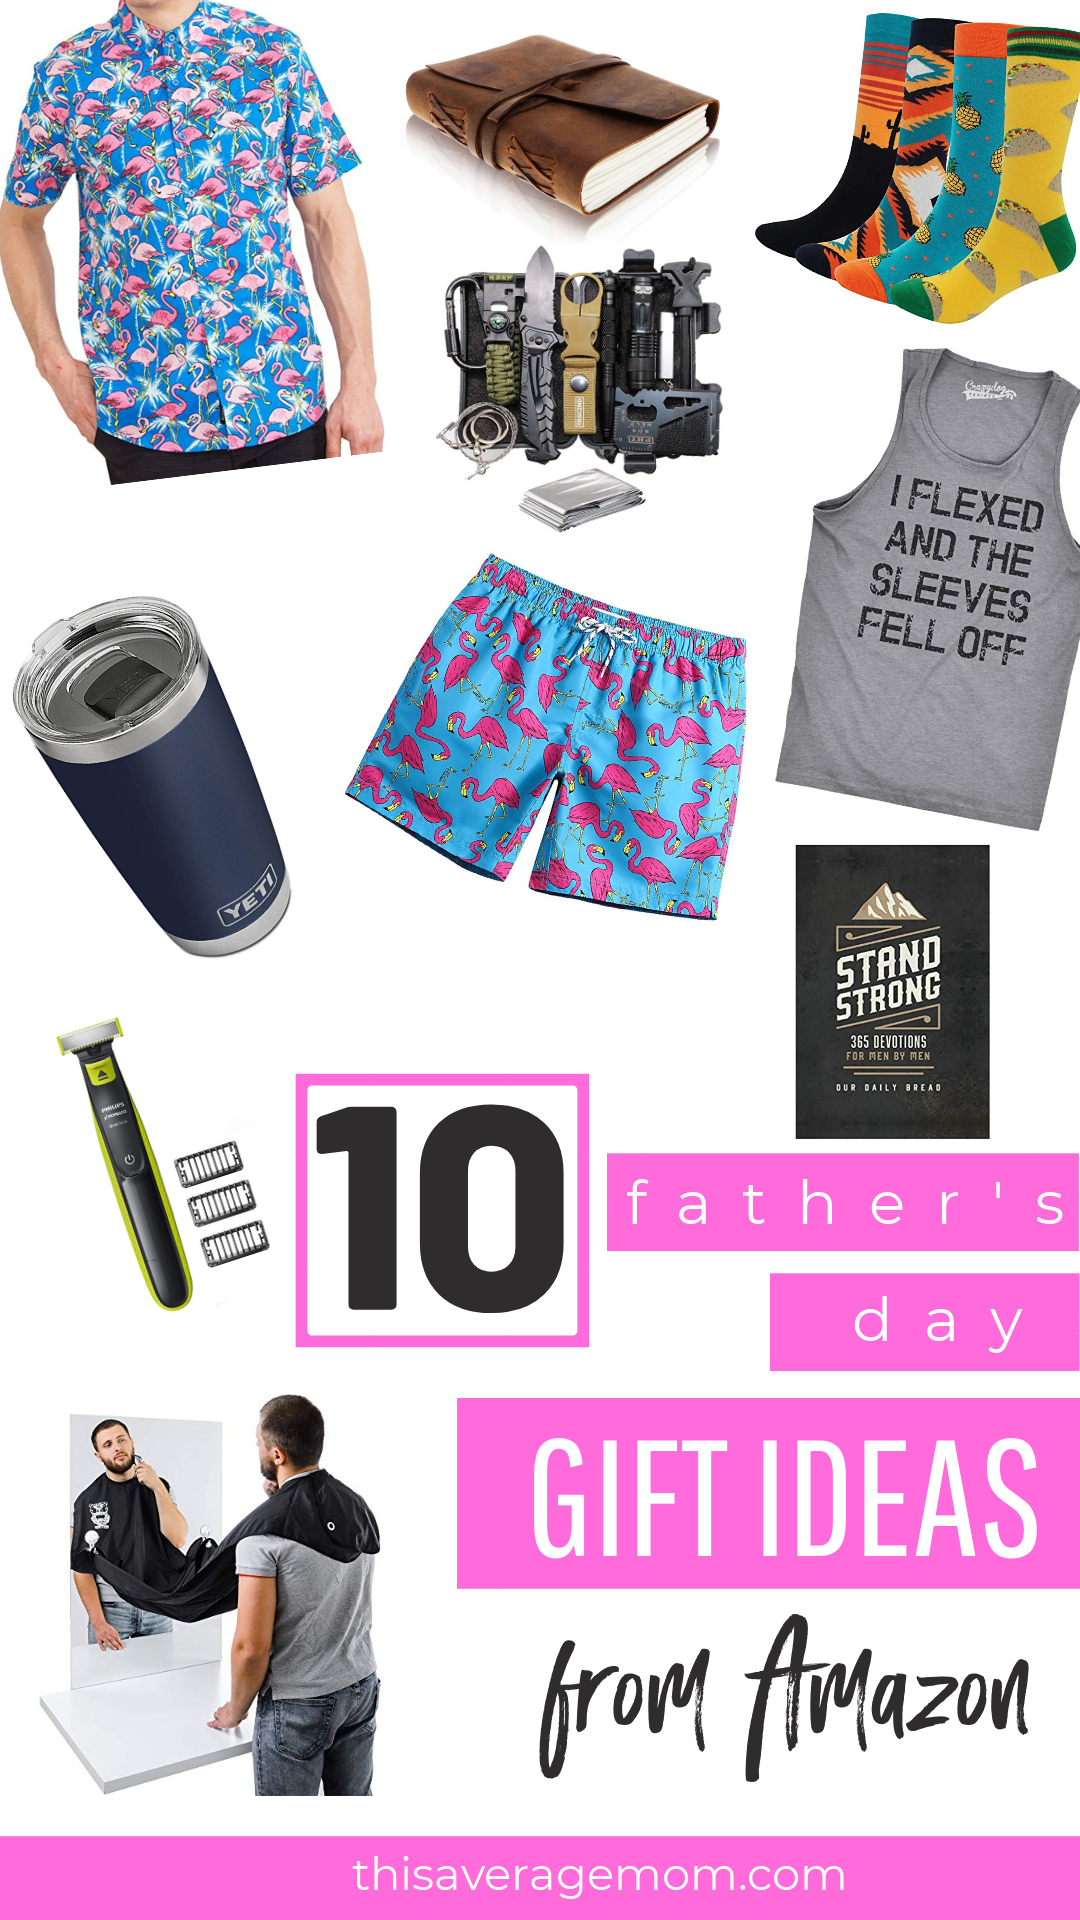 Father's Day is coming up quick! I've got you covered with ten ideas for what to get the men in your life for Father's Day. Whether you're shopping Amazon for your husband or your dad, I think there's a gift for him! #giftideas #fathersday